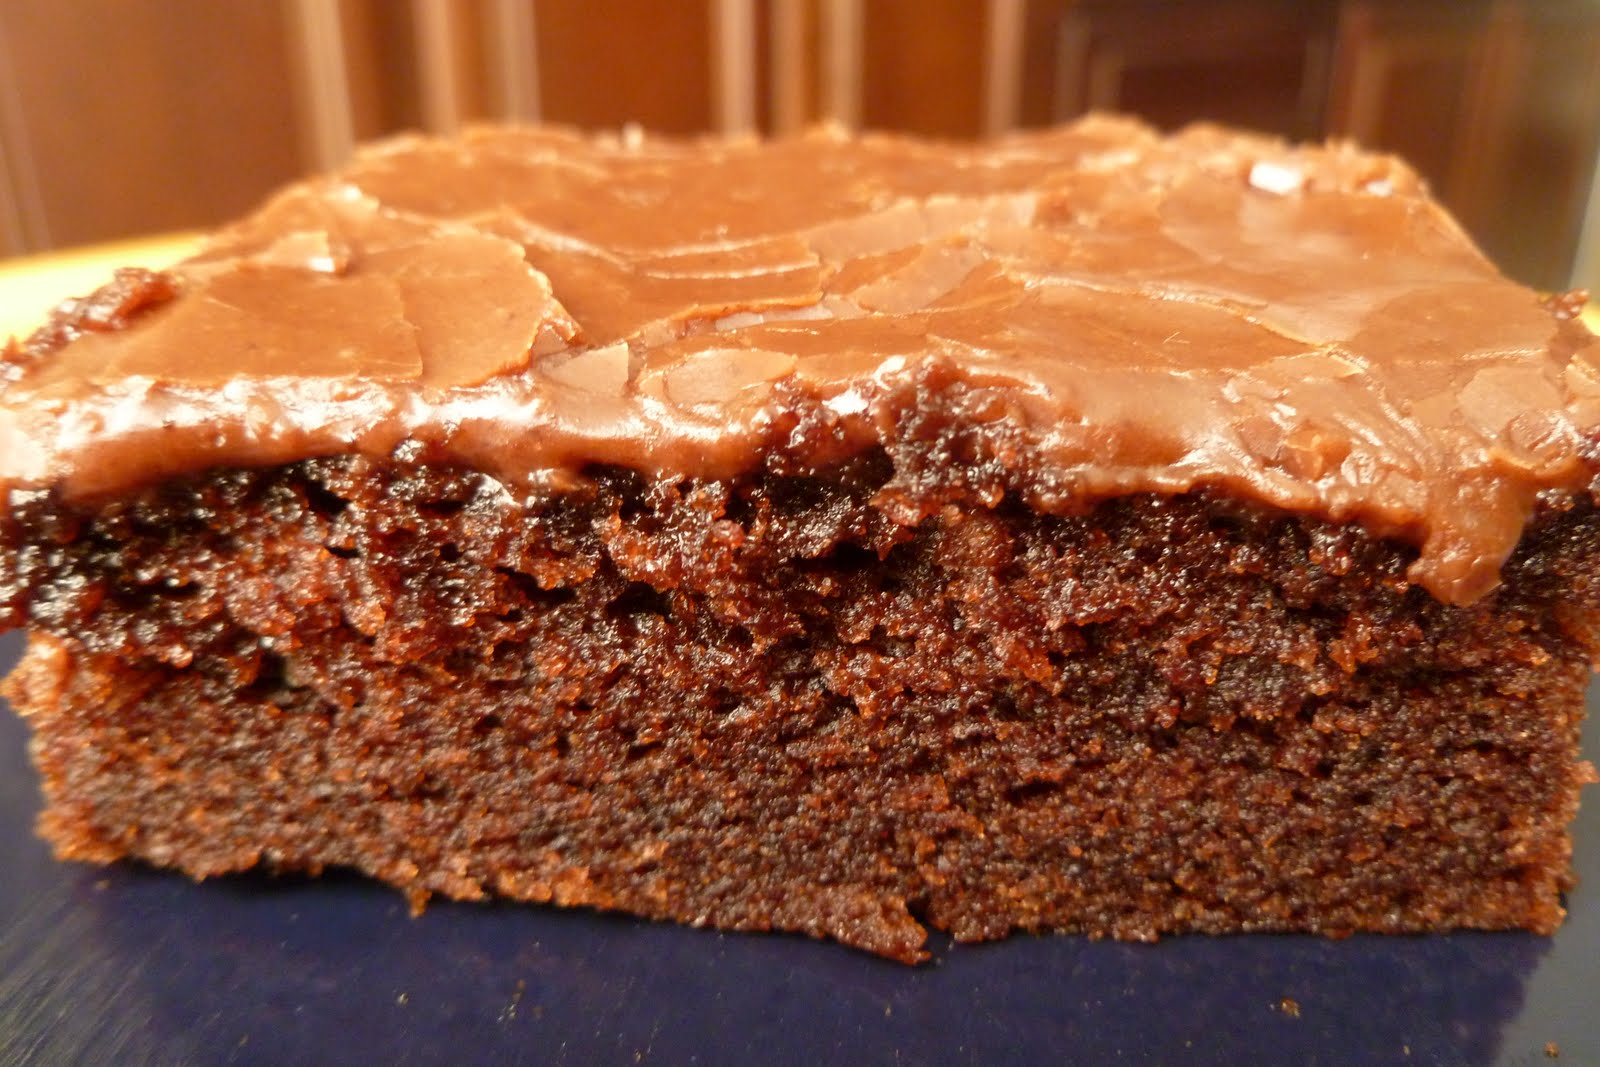 The Pastry Chef's Baking: Diane's Double Chocolate Sheet Cake